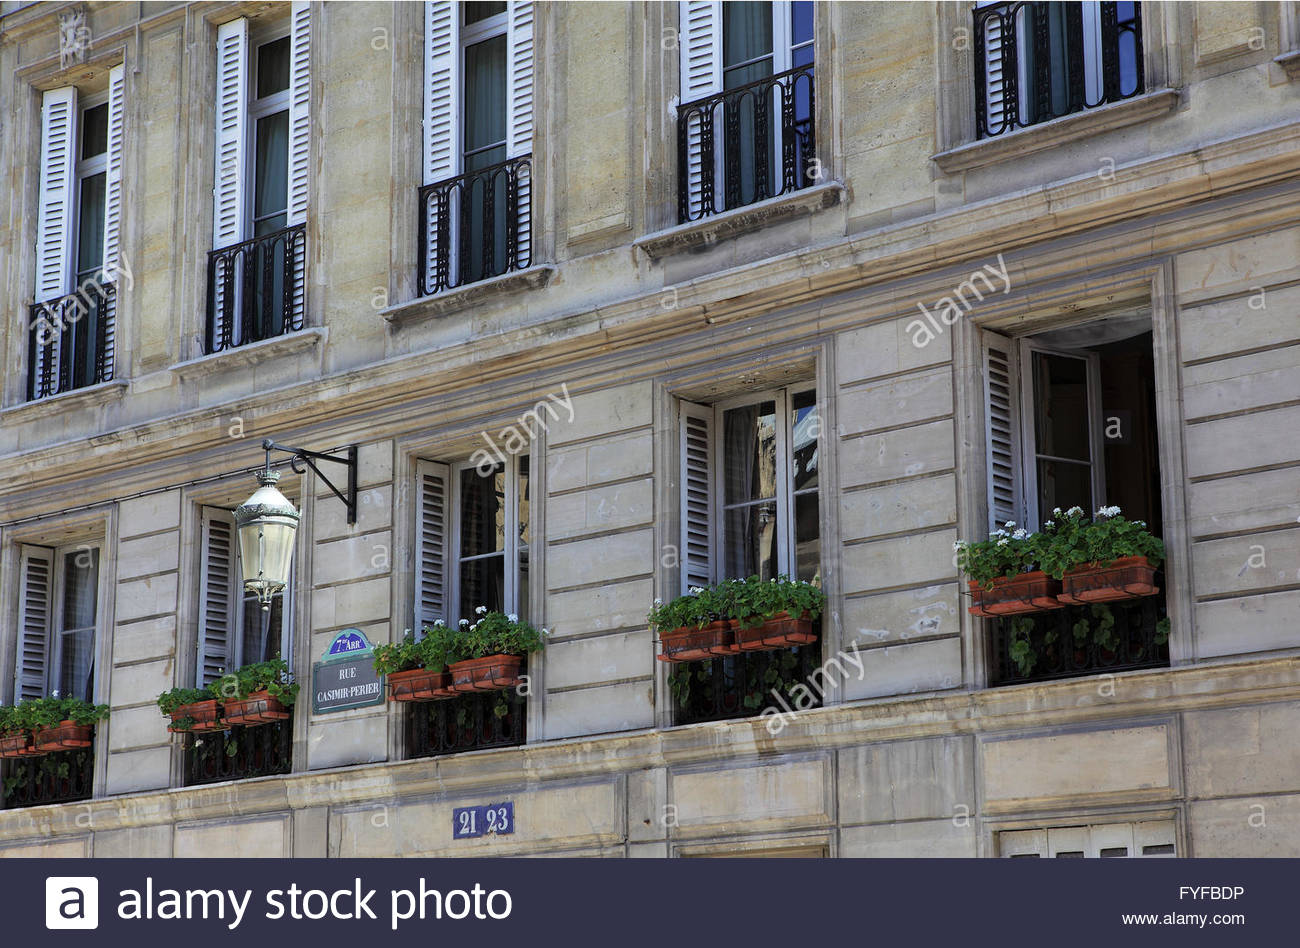 Shuttered windows in Rue Casimir-Perrier Paris on a spring day. - Stock Image